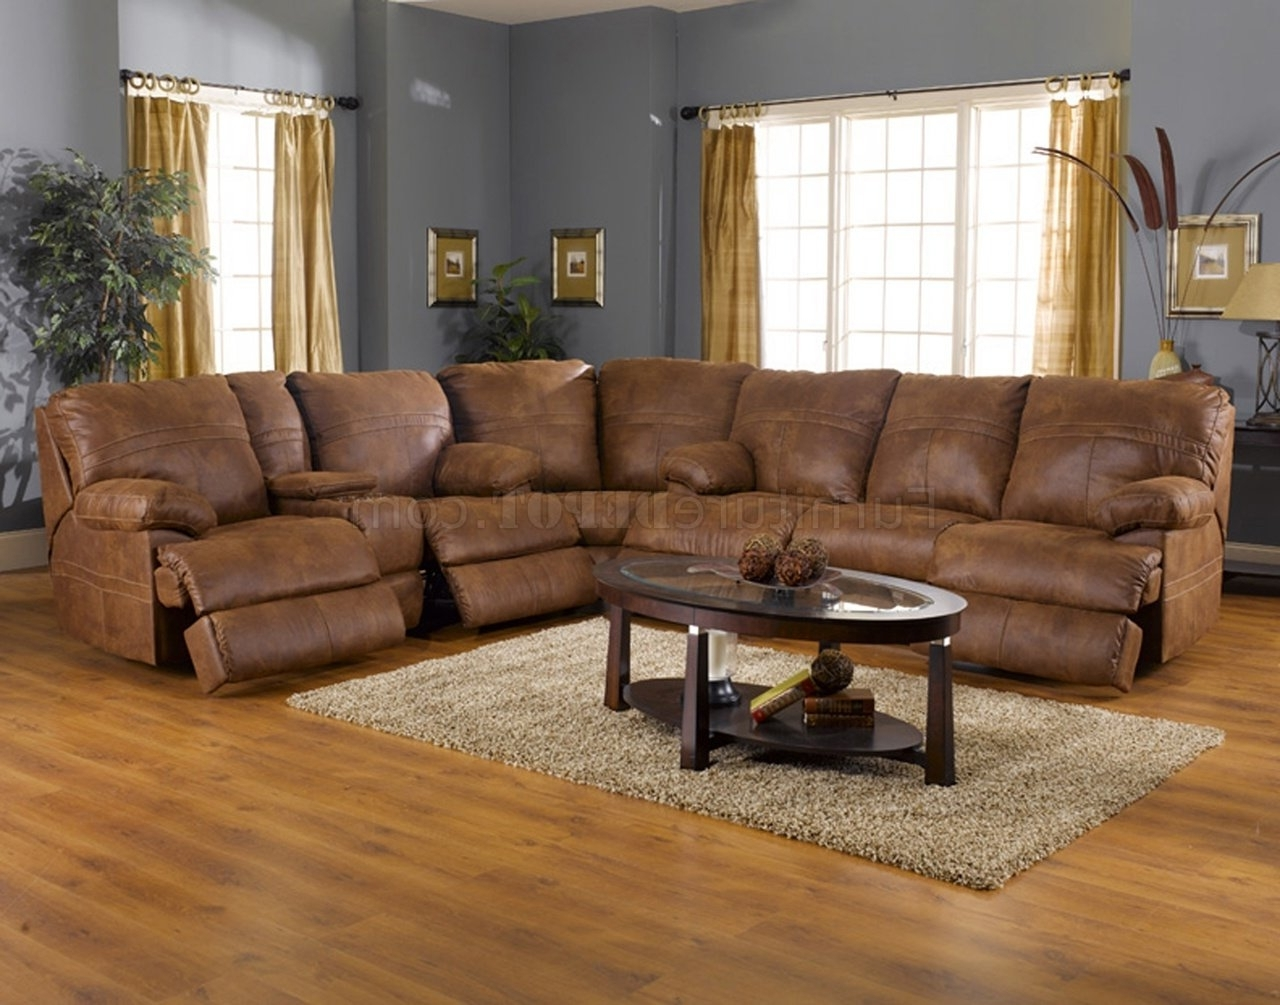 Fashionable Rich Tanner Faux Leather Fabric Ranger Modern Sectional Sofa Regarding Reclining Sofas With Chaise (View 12 of 15)